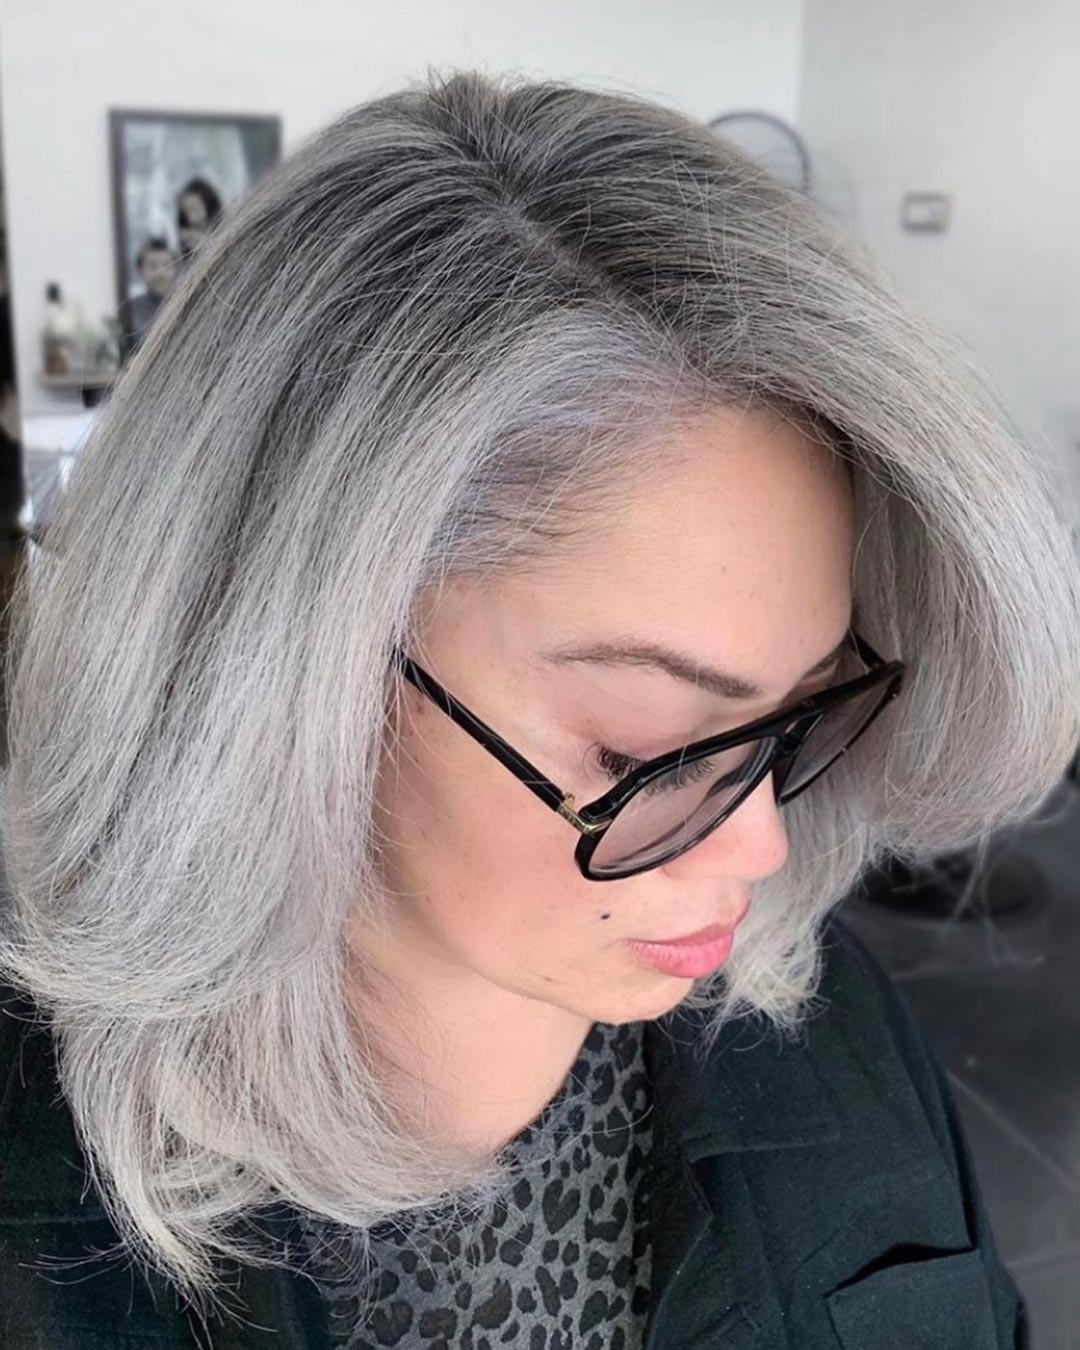 Fresh silver highlights on her naturally black hair blended the greys beautifully, by Andrew Smith